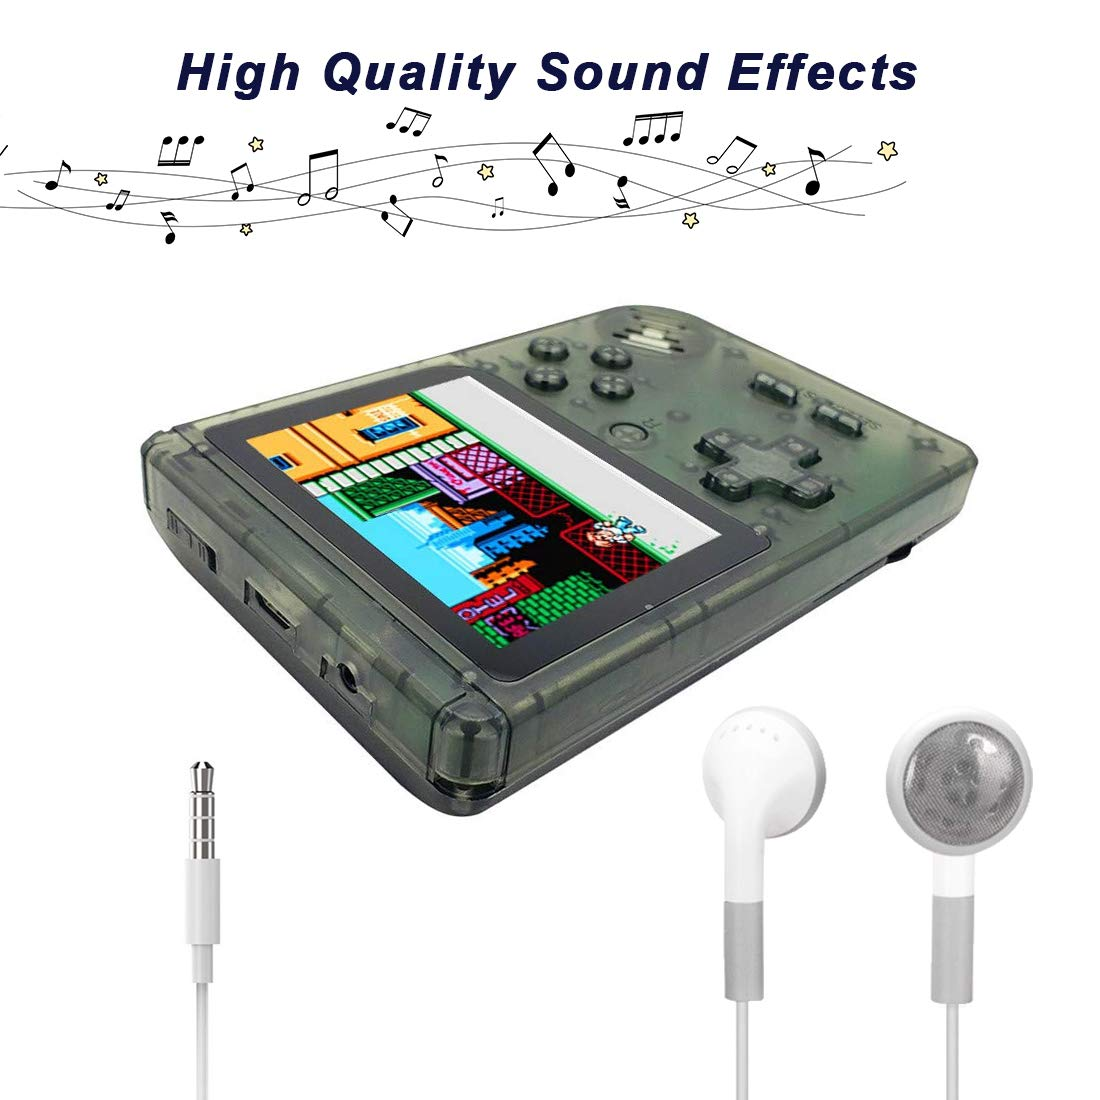 AKTOUGST Handheld Game Console, Retro Game Console 400 Classic Game FC System Video 3 Inch with Headphone Portable Mini Extra Controller Support TV 2 Player,Gift for Child Adult, (Transparent Black) by AKTOUGST (Image #5)